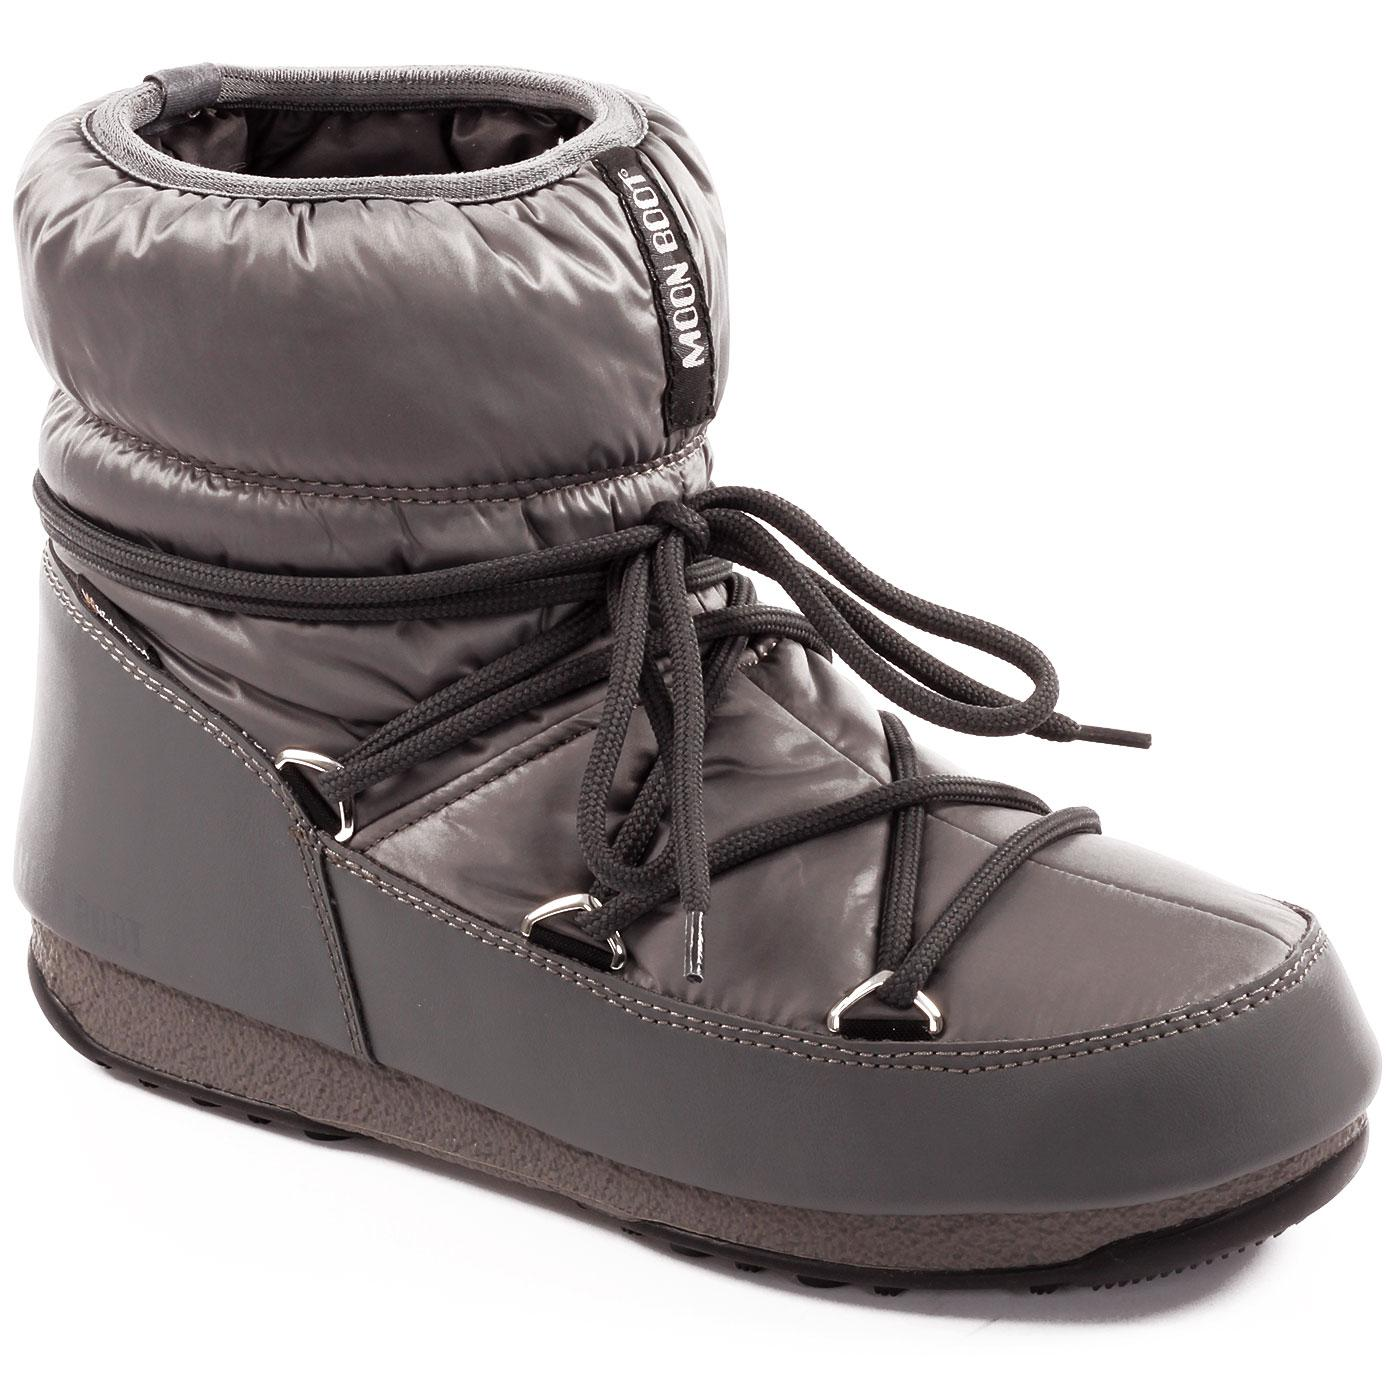 MOON BOOT Low Nylon WP Retro 70s Snow Boots CR